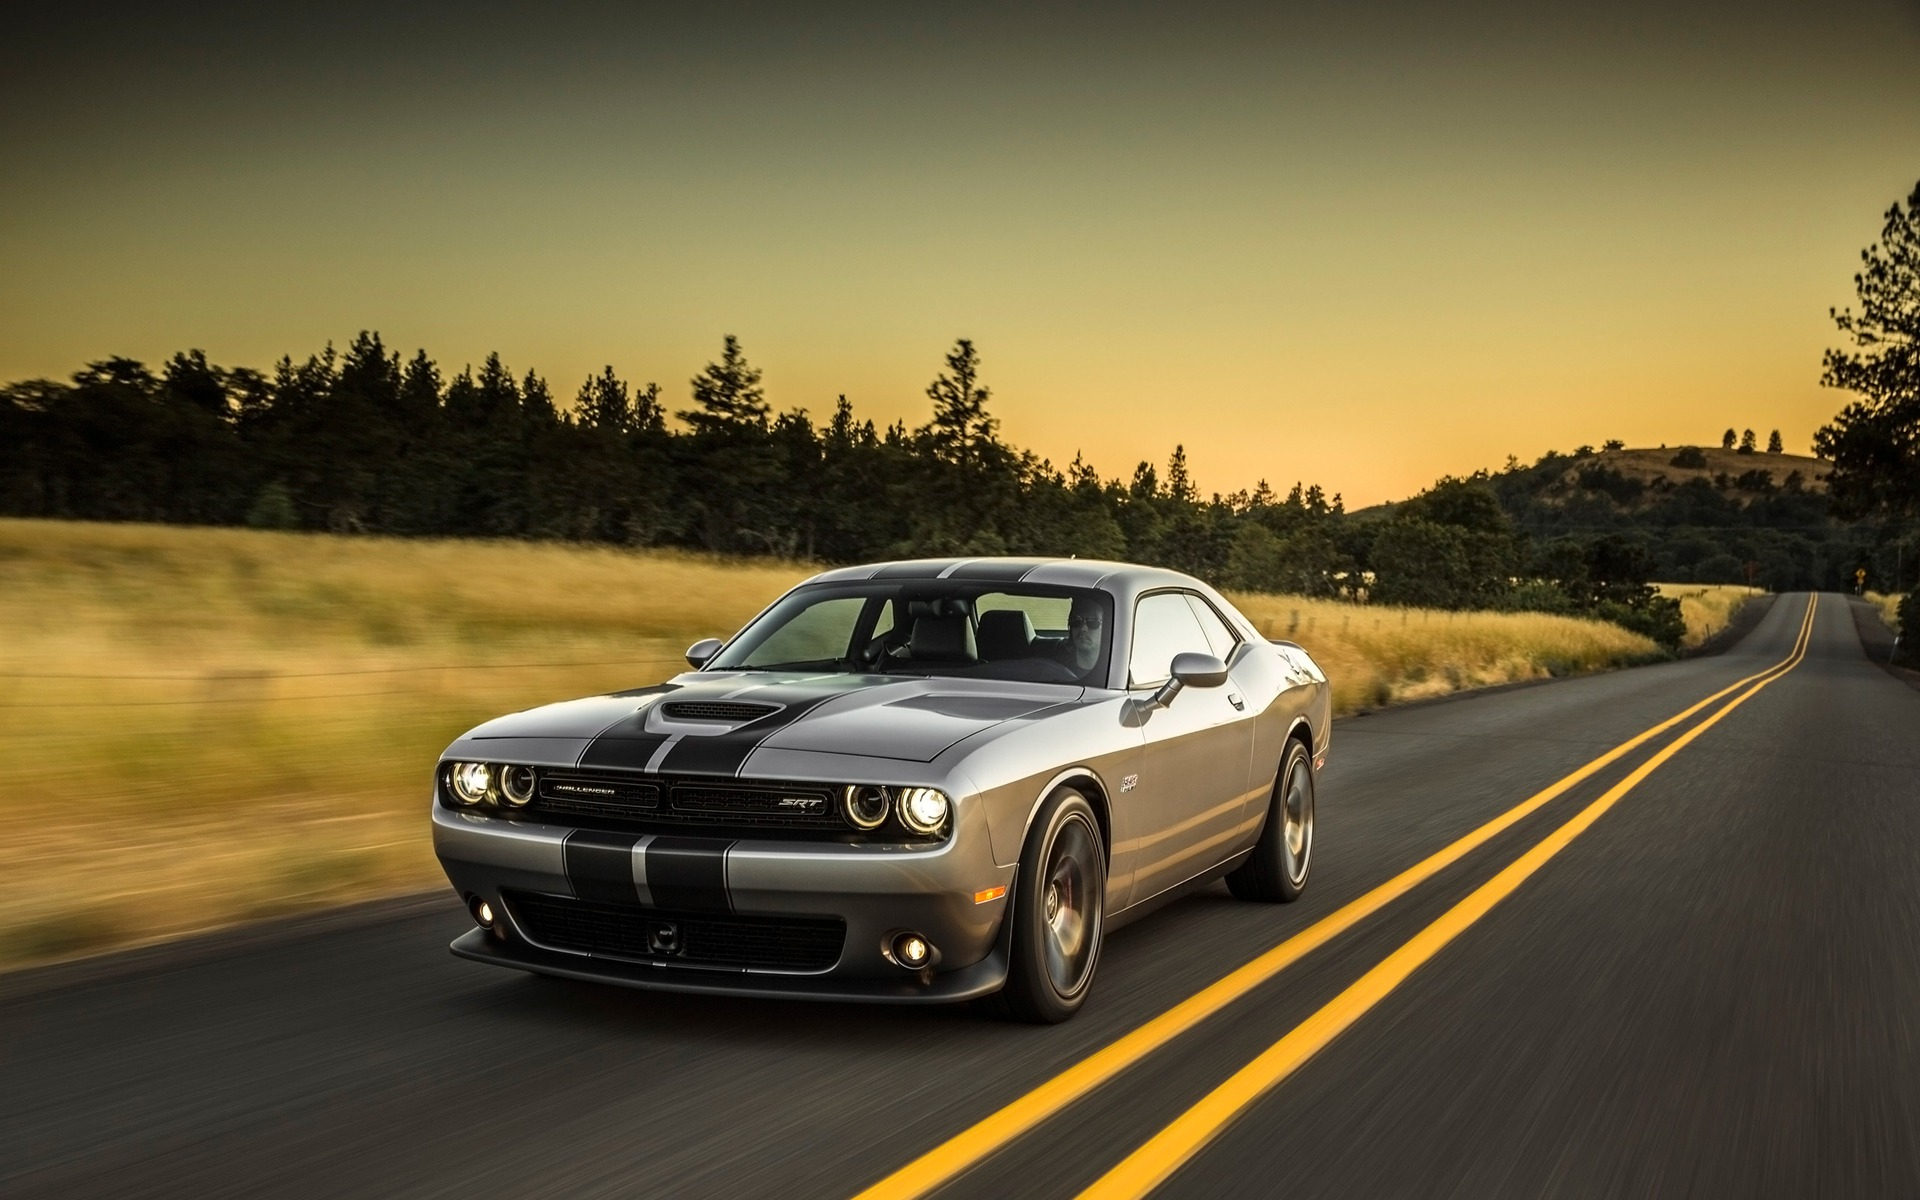 Muscle Car Sales Slowing Down in the U.S. - 3/6